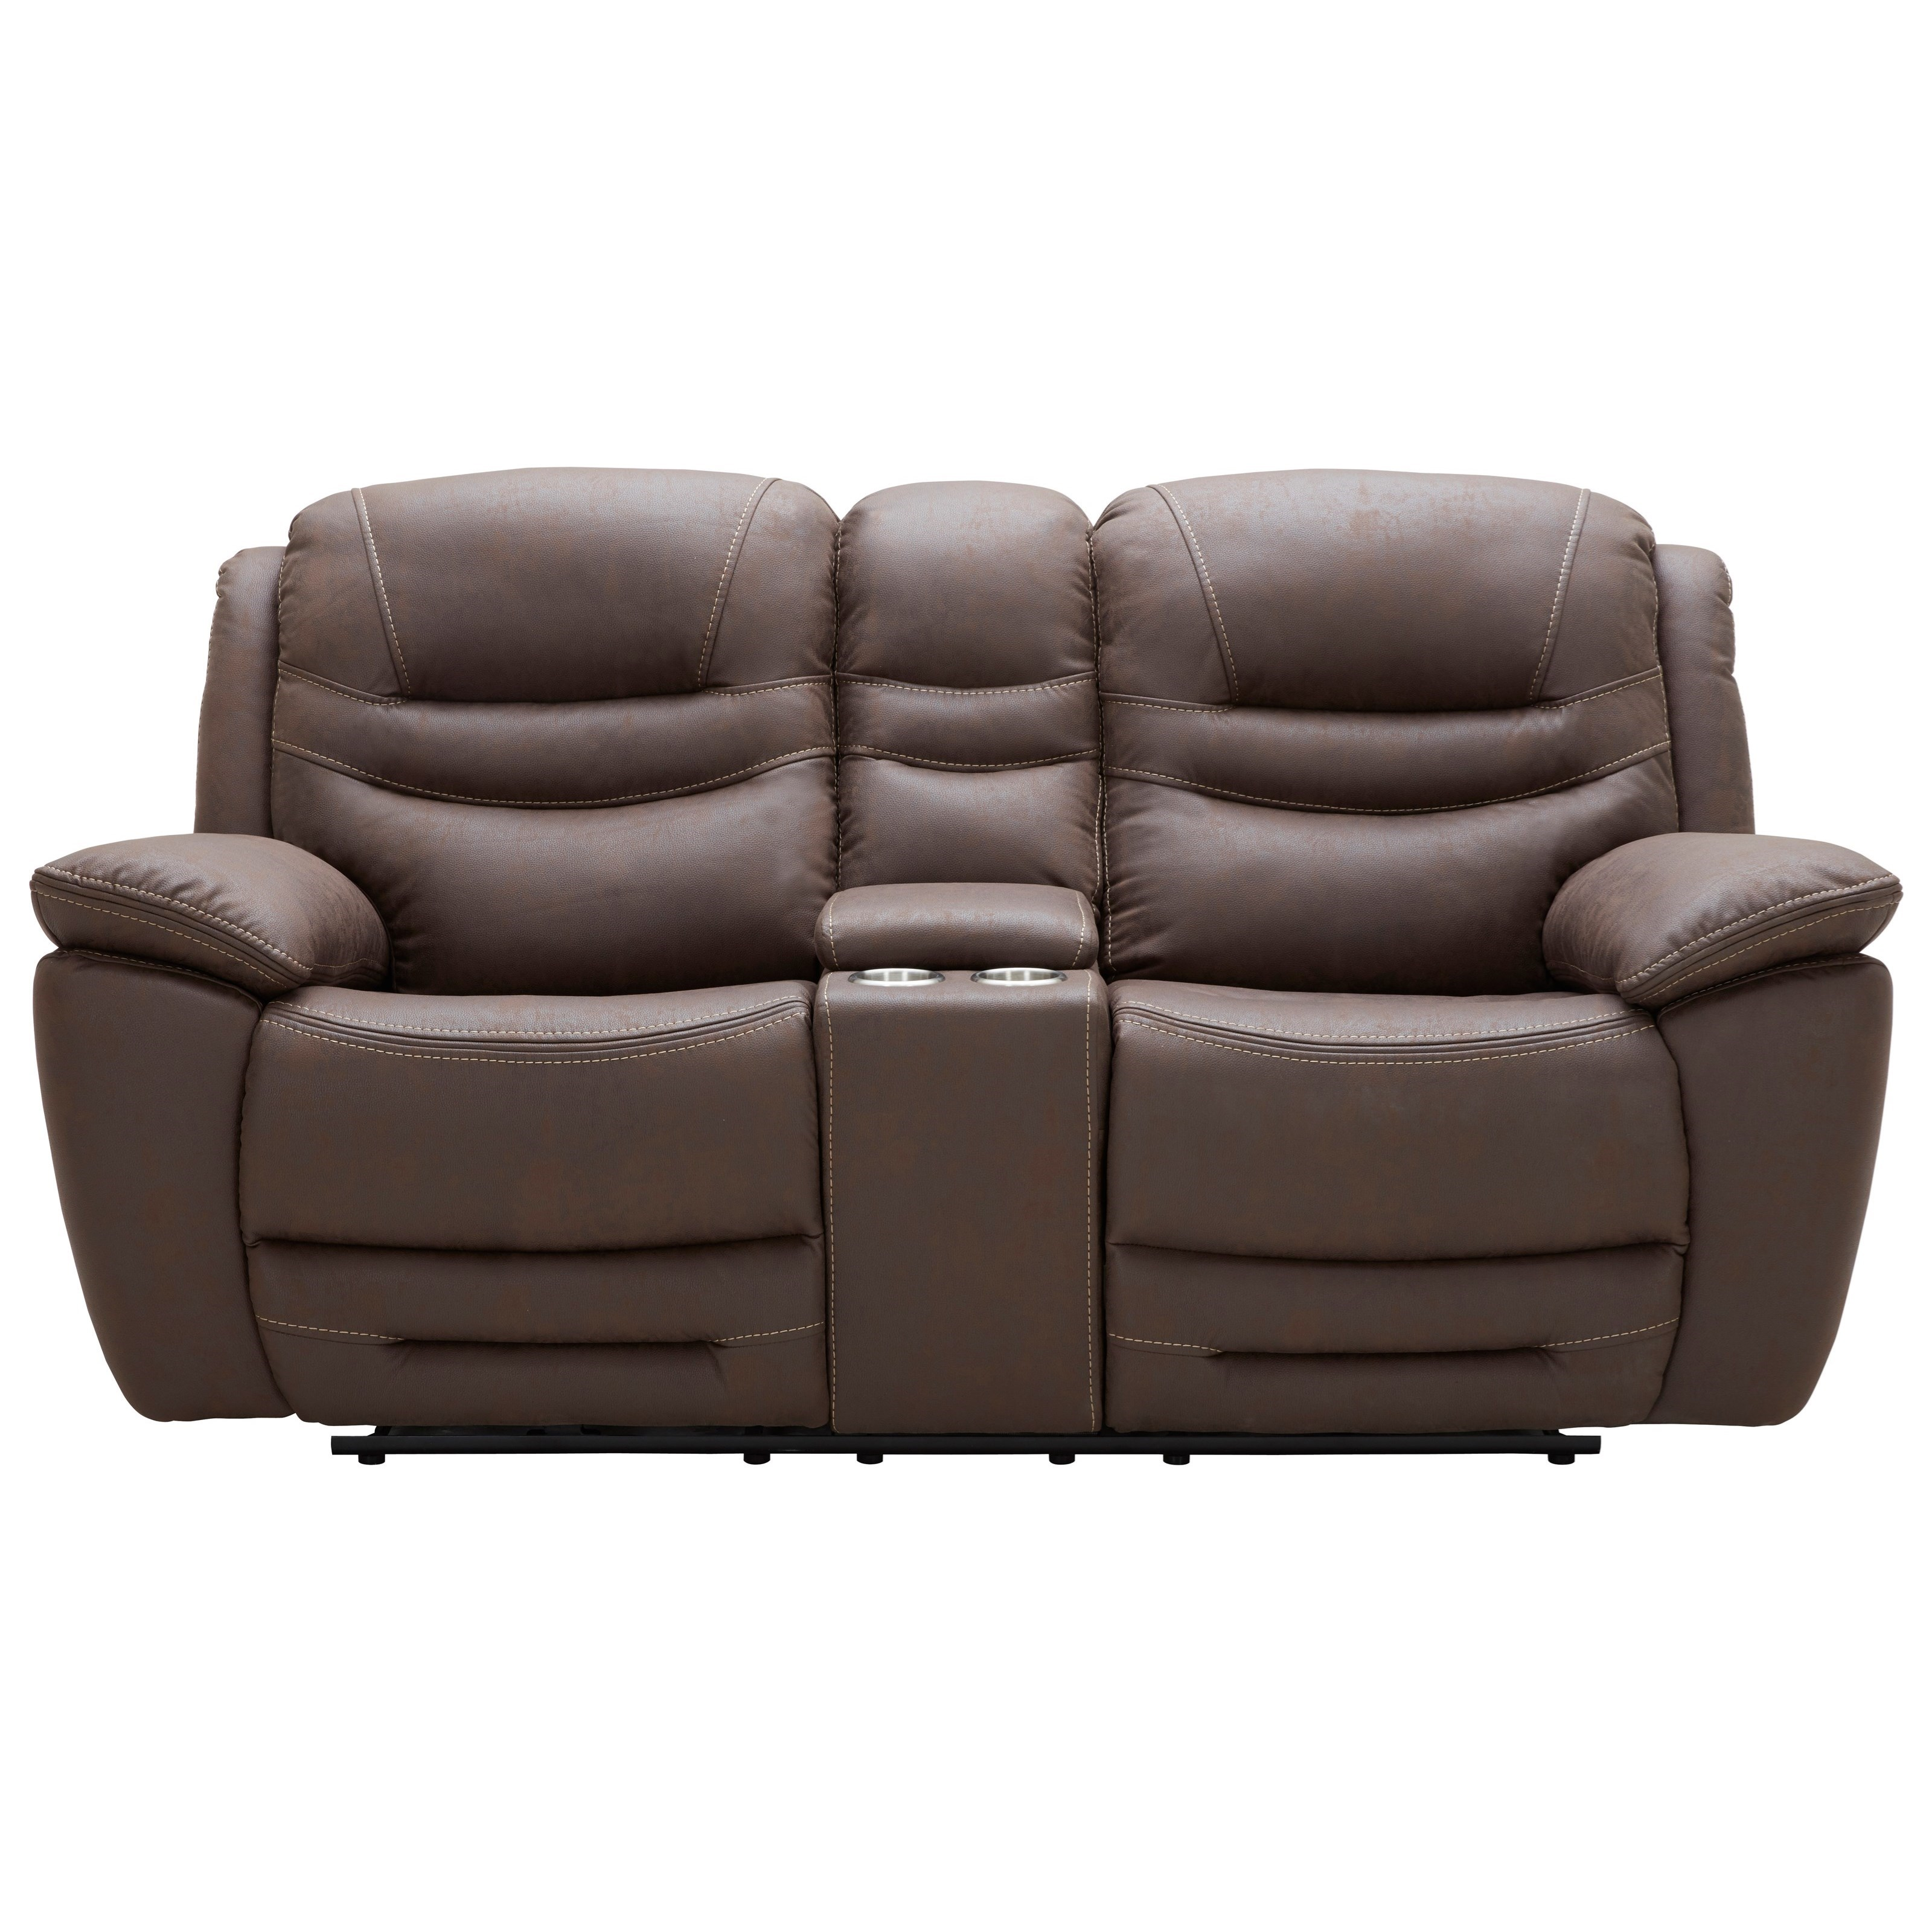 Pwr Reclining Glider Loveseat w/ Console